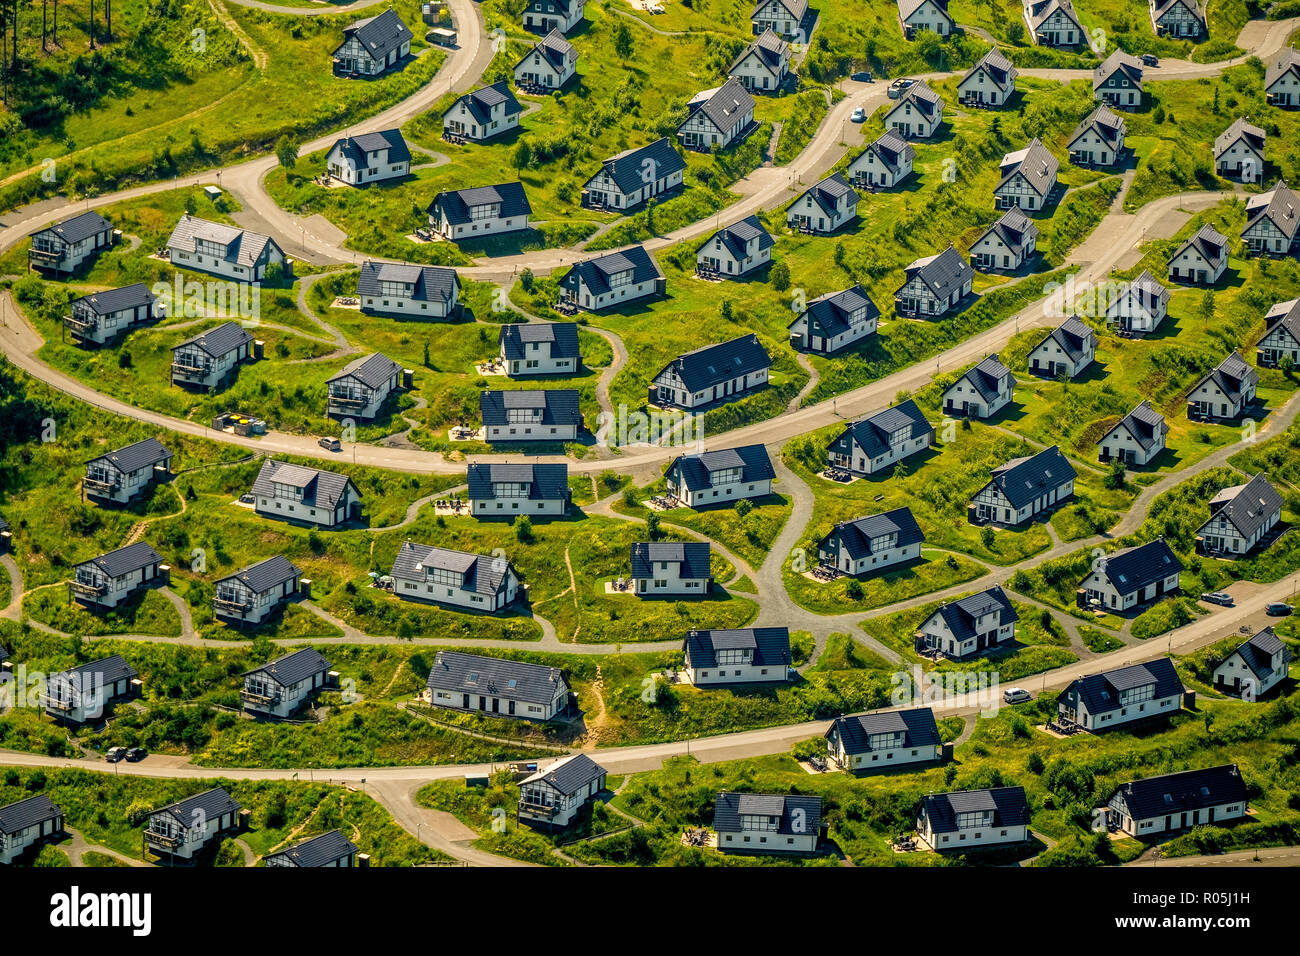 Aerial view, Holiday cottages Landal Winterberg, Apartments, Boredom, uniformity, standard construction, monotony, hilltop with standard houses, circu - Stock Image